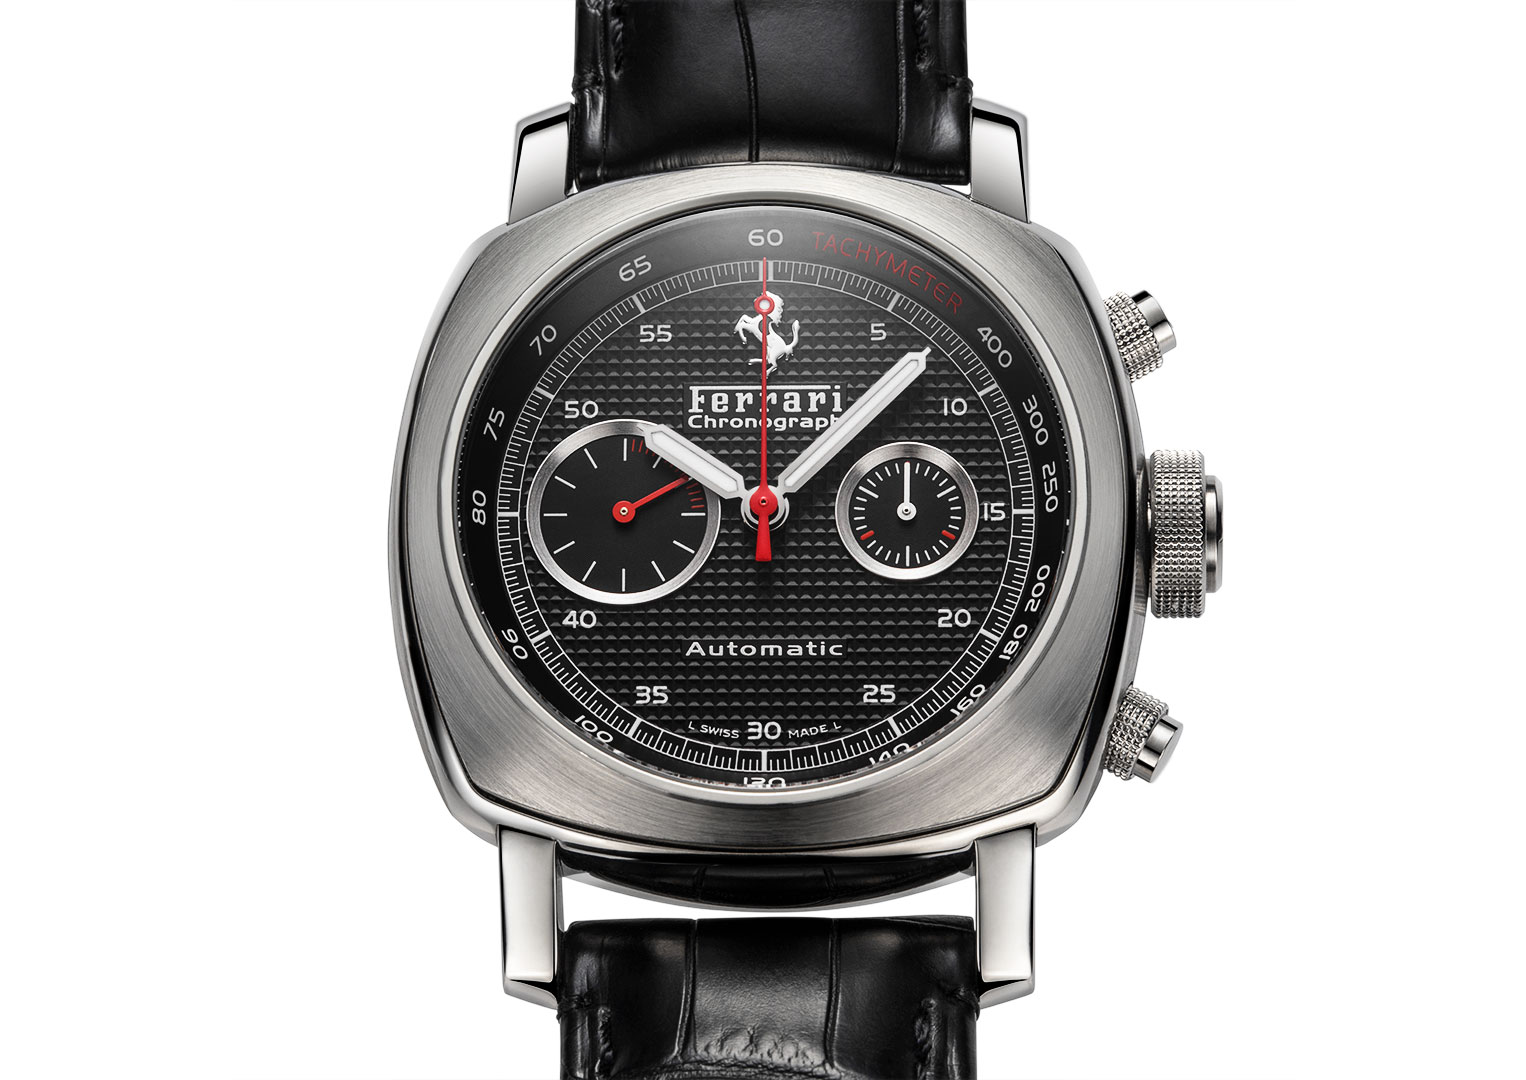 Panerai and Ferrari worked together between 2005 and 2010